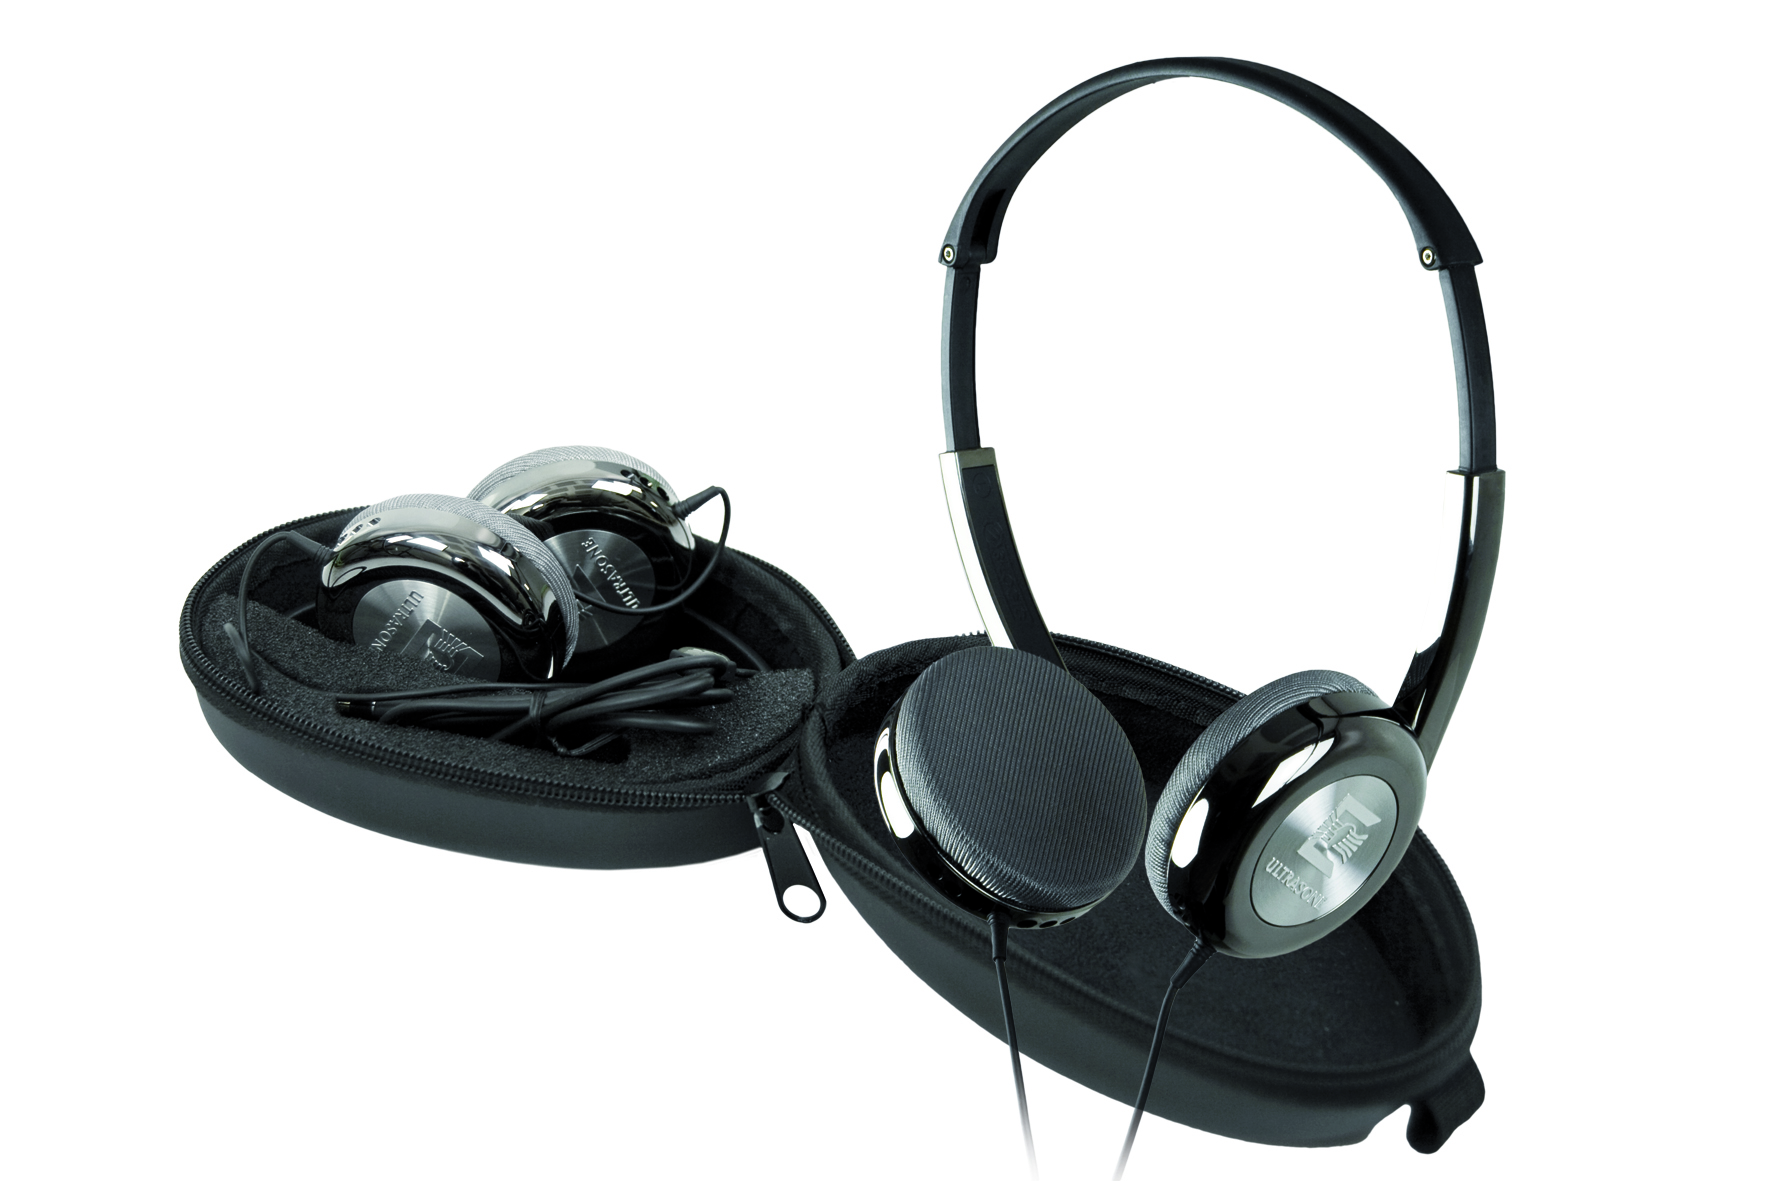 GearDiary Need Help Finding The Right Father's Day Gift For Your Music-loving Dad? How About These...